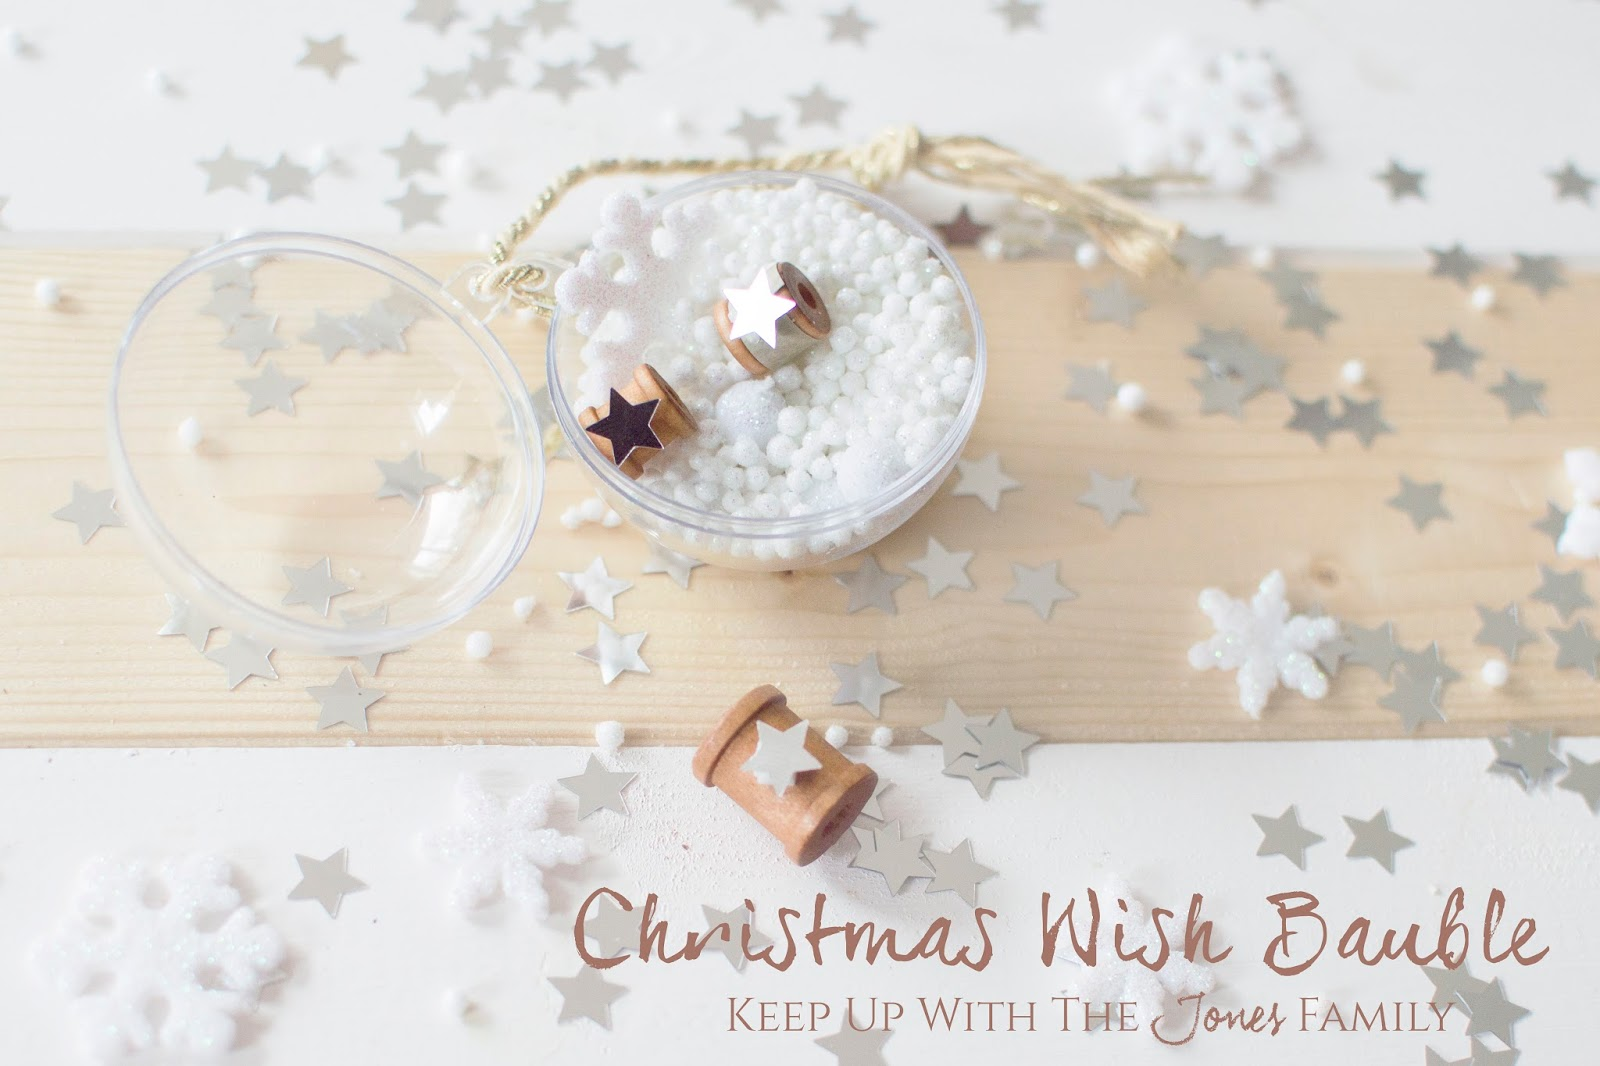 CHRISTMAS WISH BAUBLES